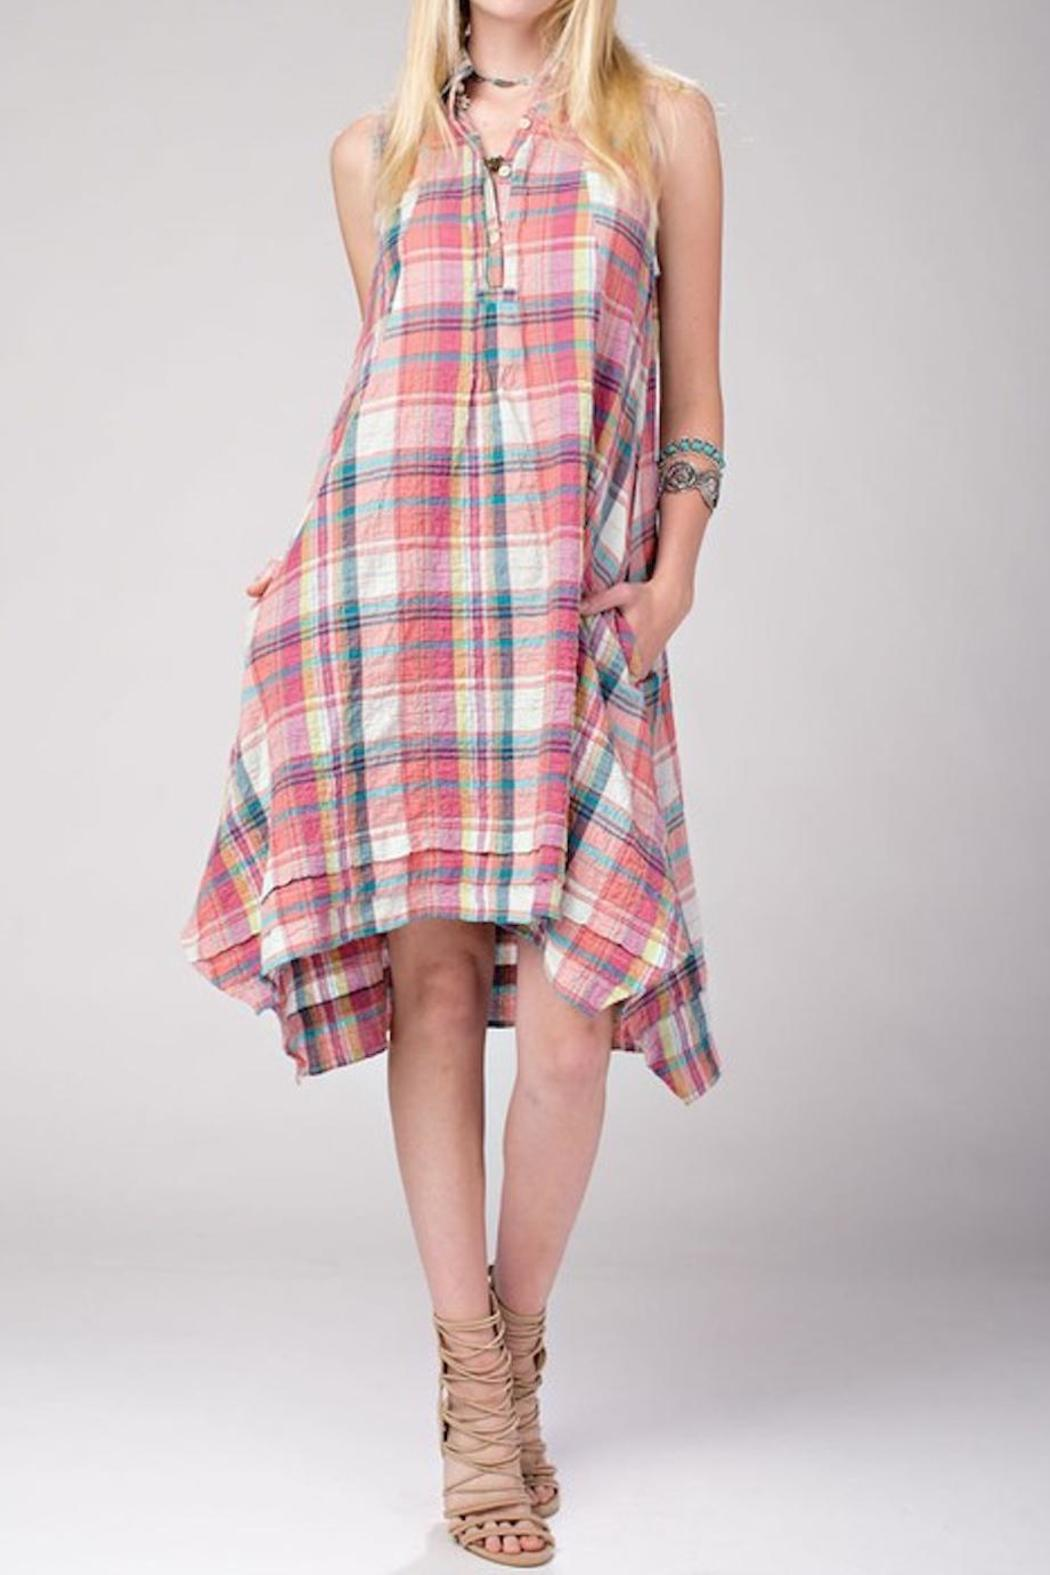 Toffee Mocha Pink Plaid Dress from New York by Chandeliers ...